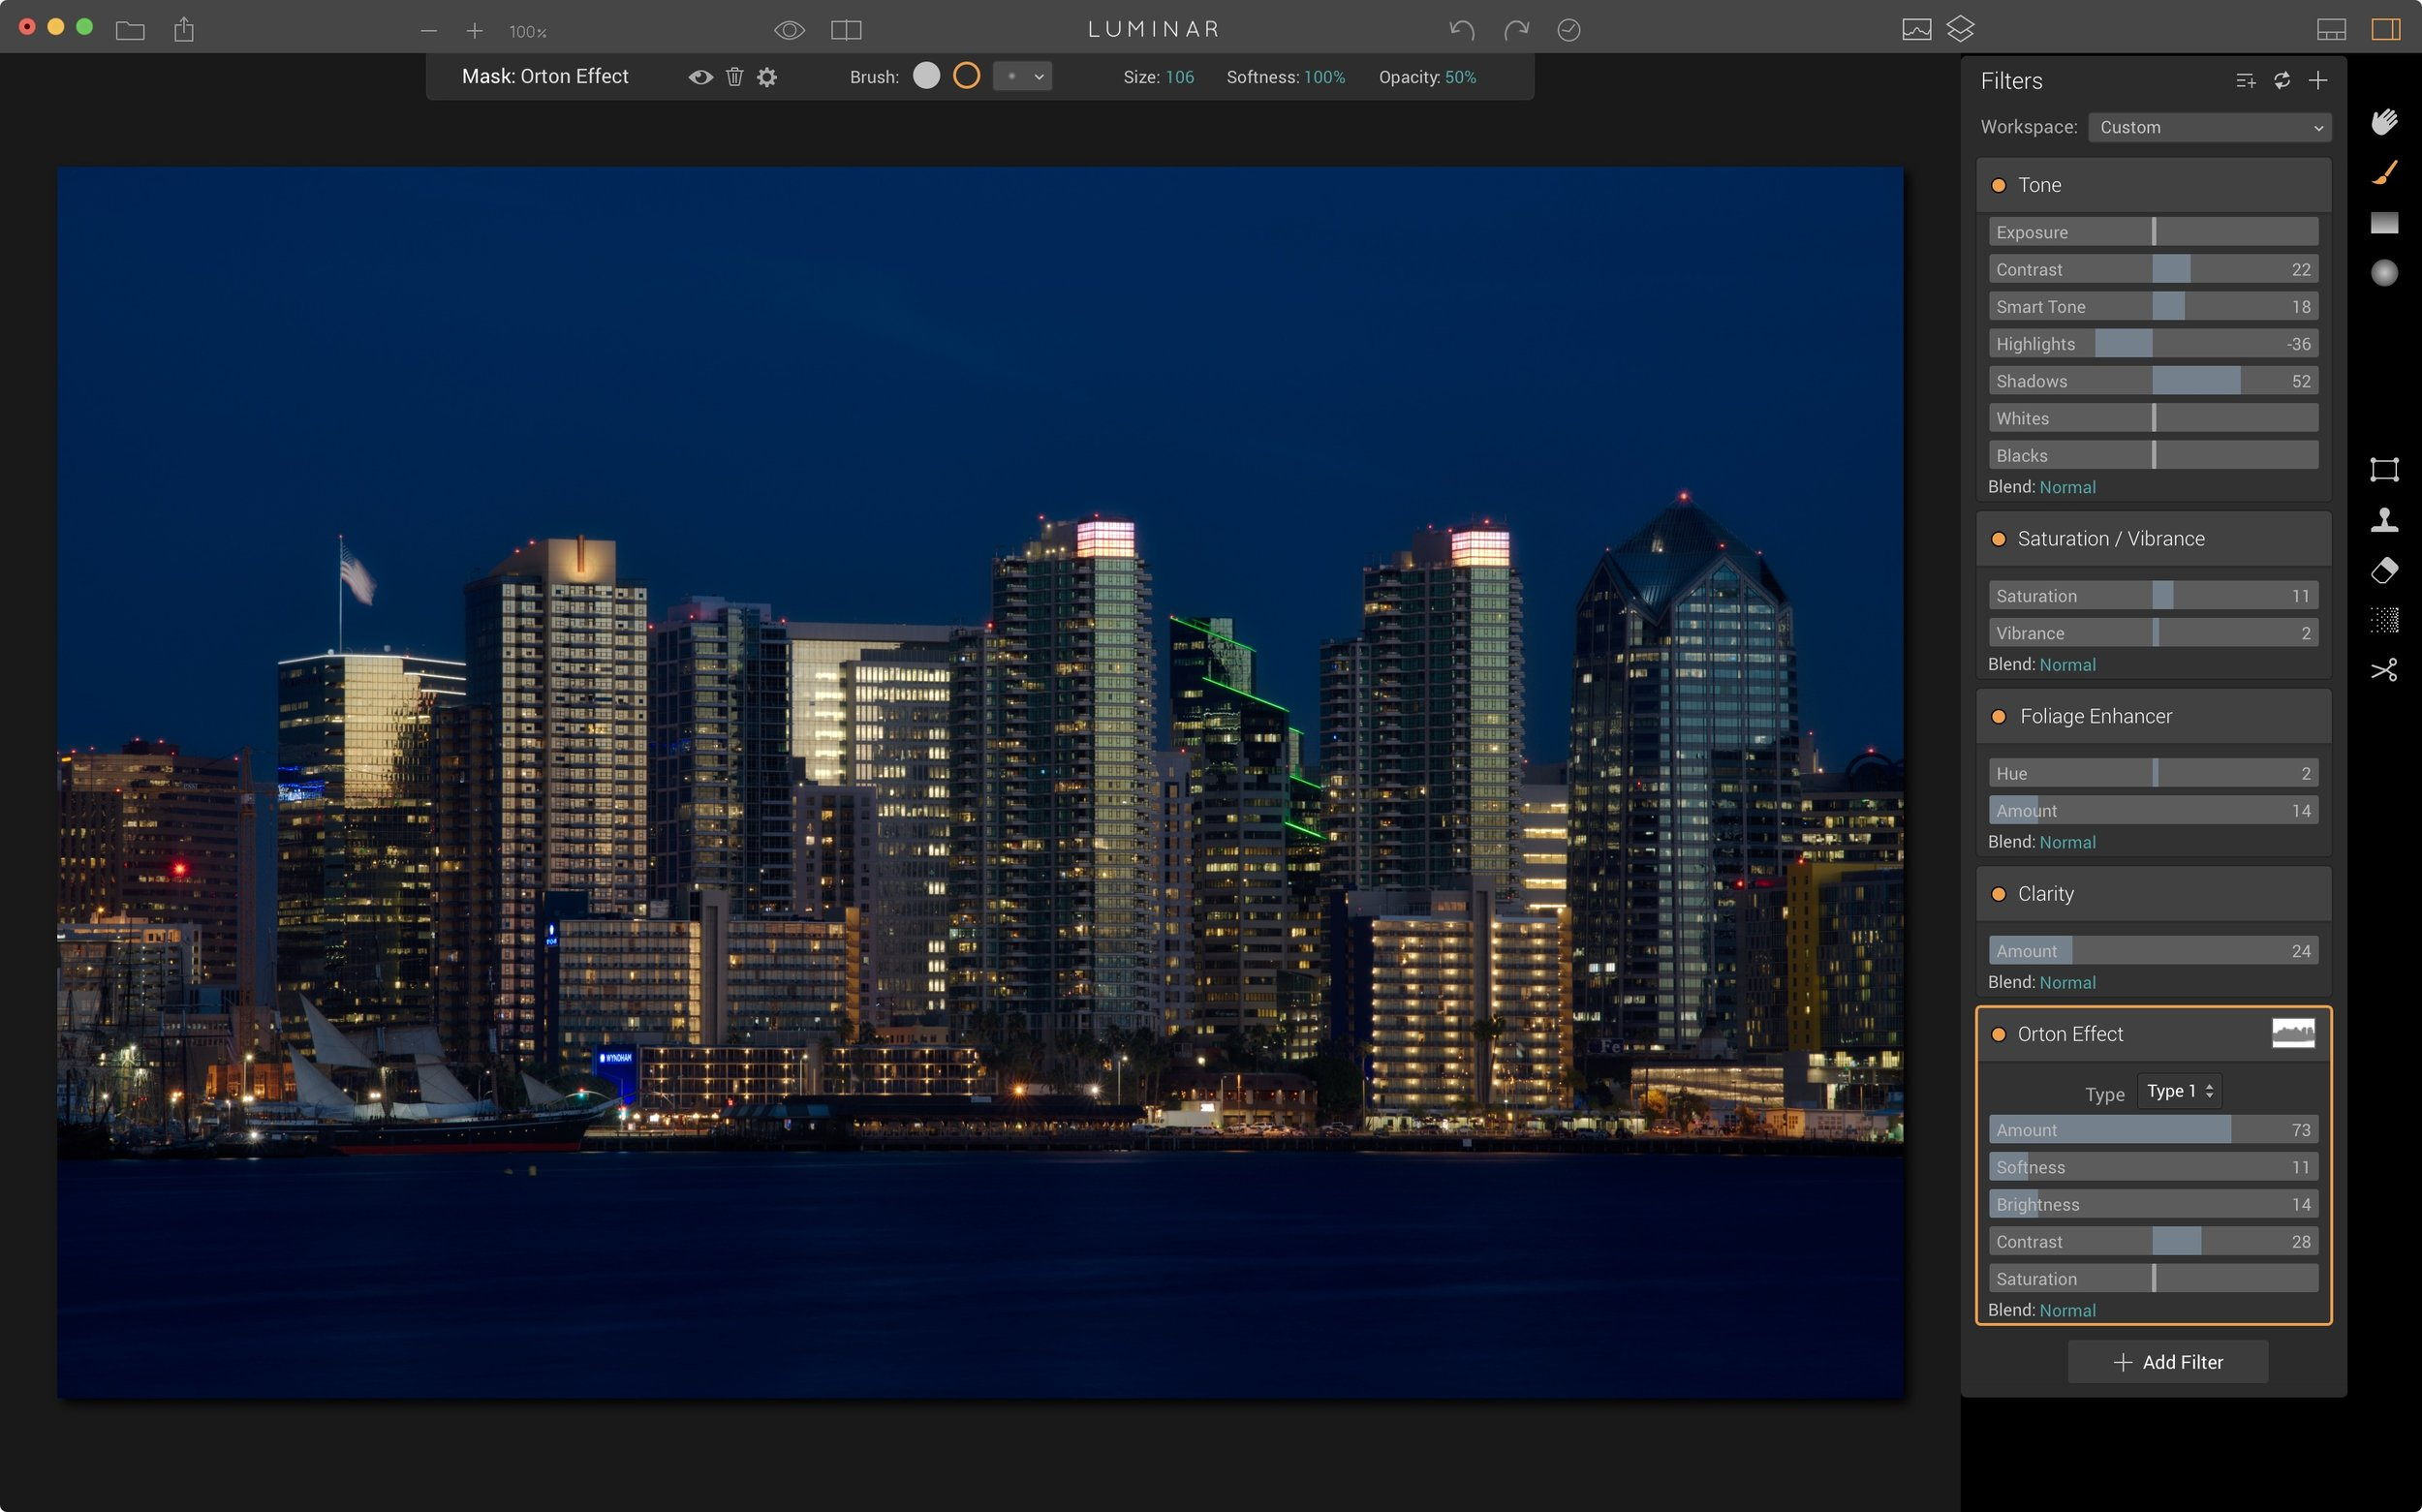 Step 4: Mask the Orton filter away from the skyline